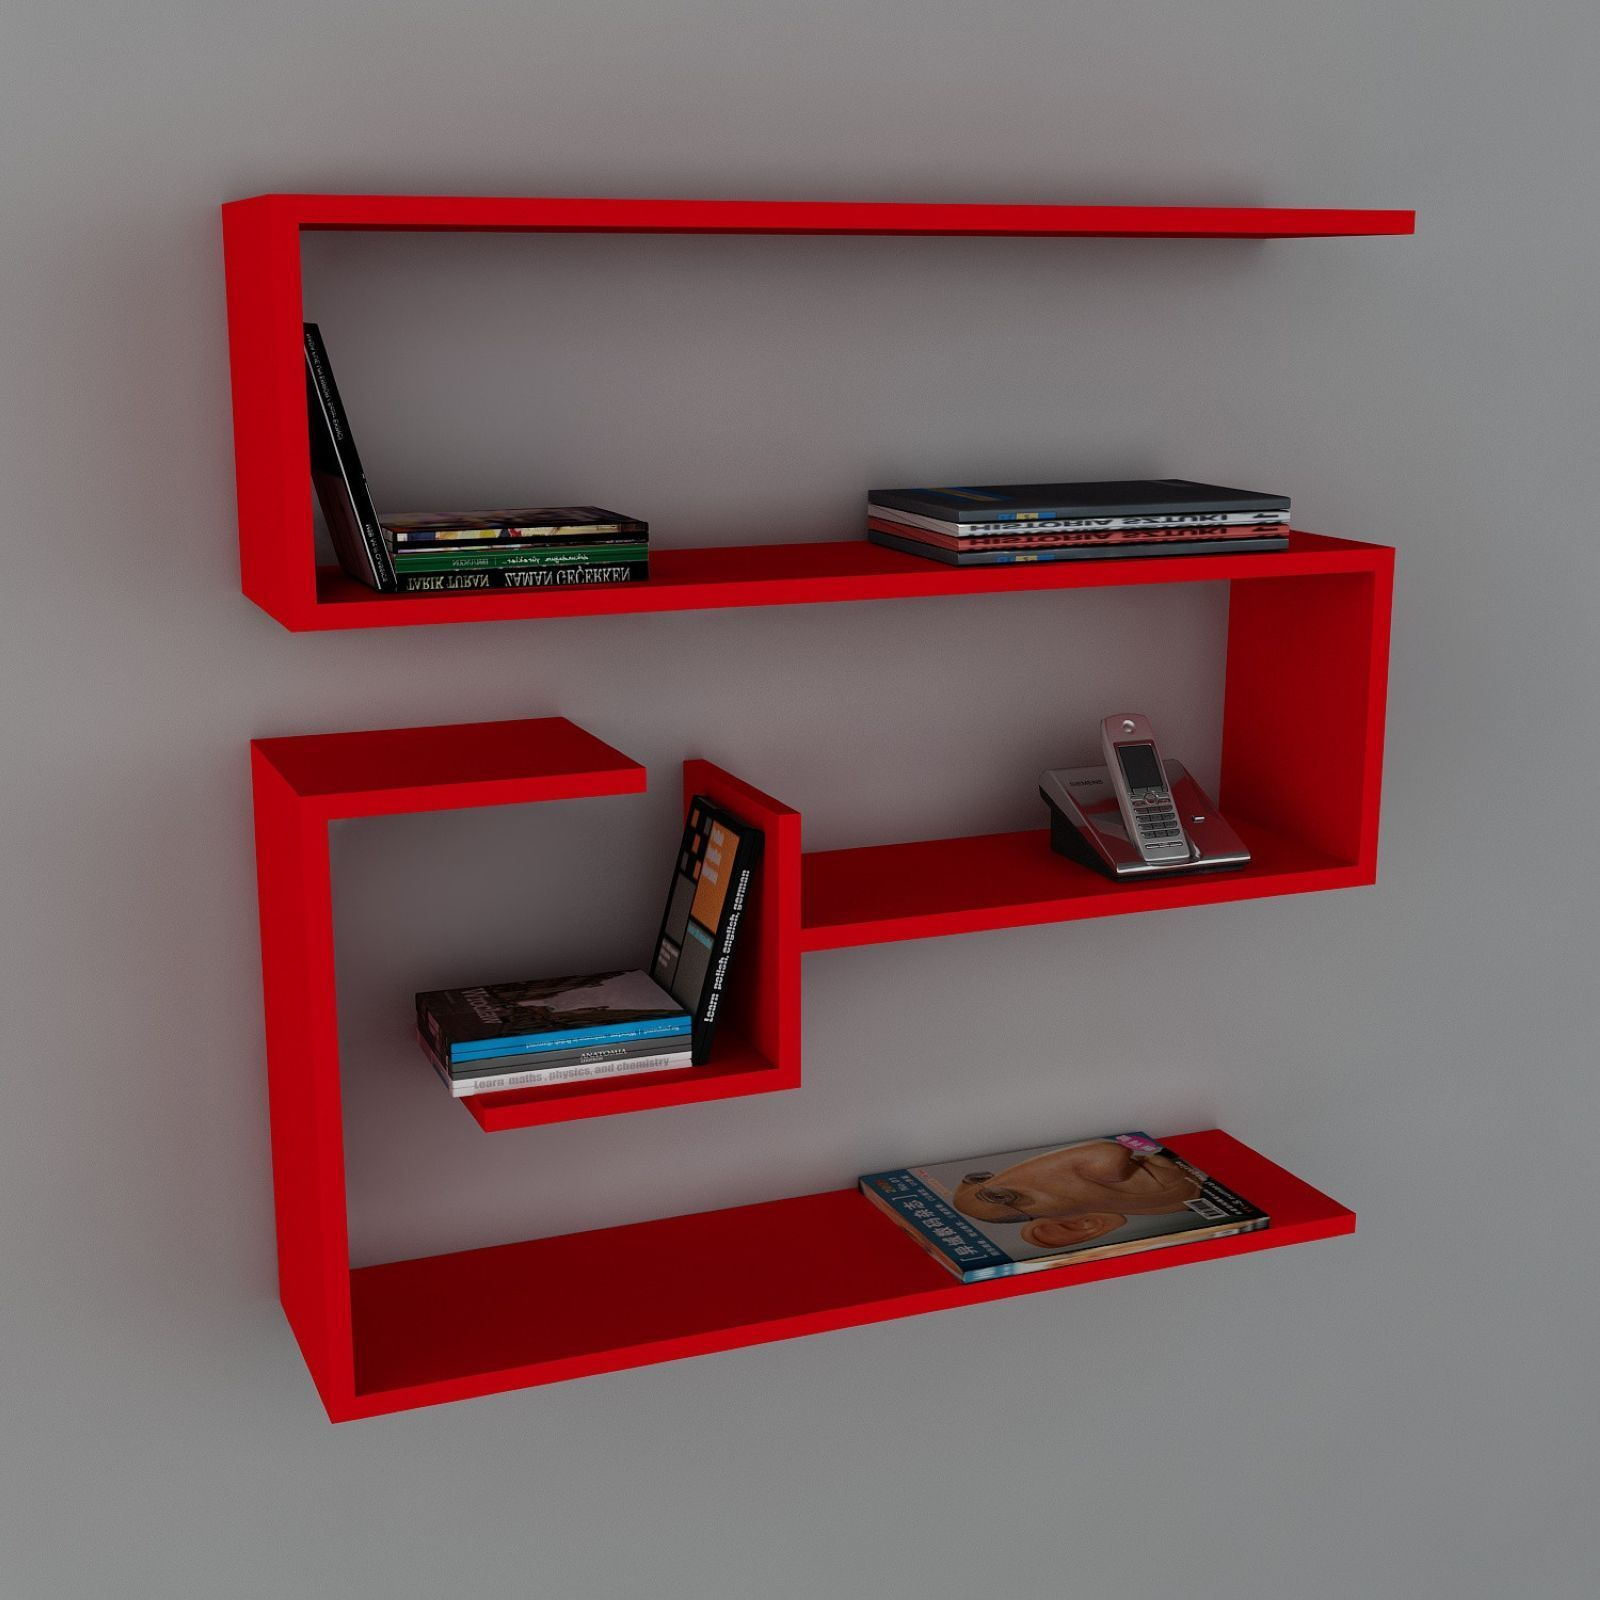 Wooden art tag re murale rouge brandalley - Etagere murale rouge ...